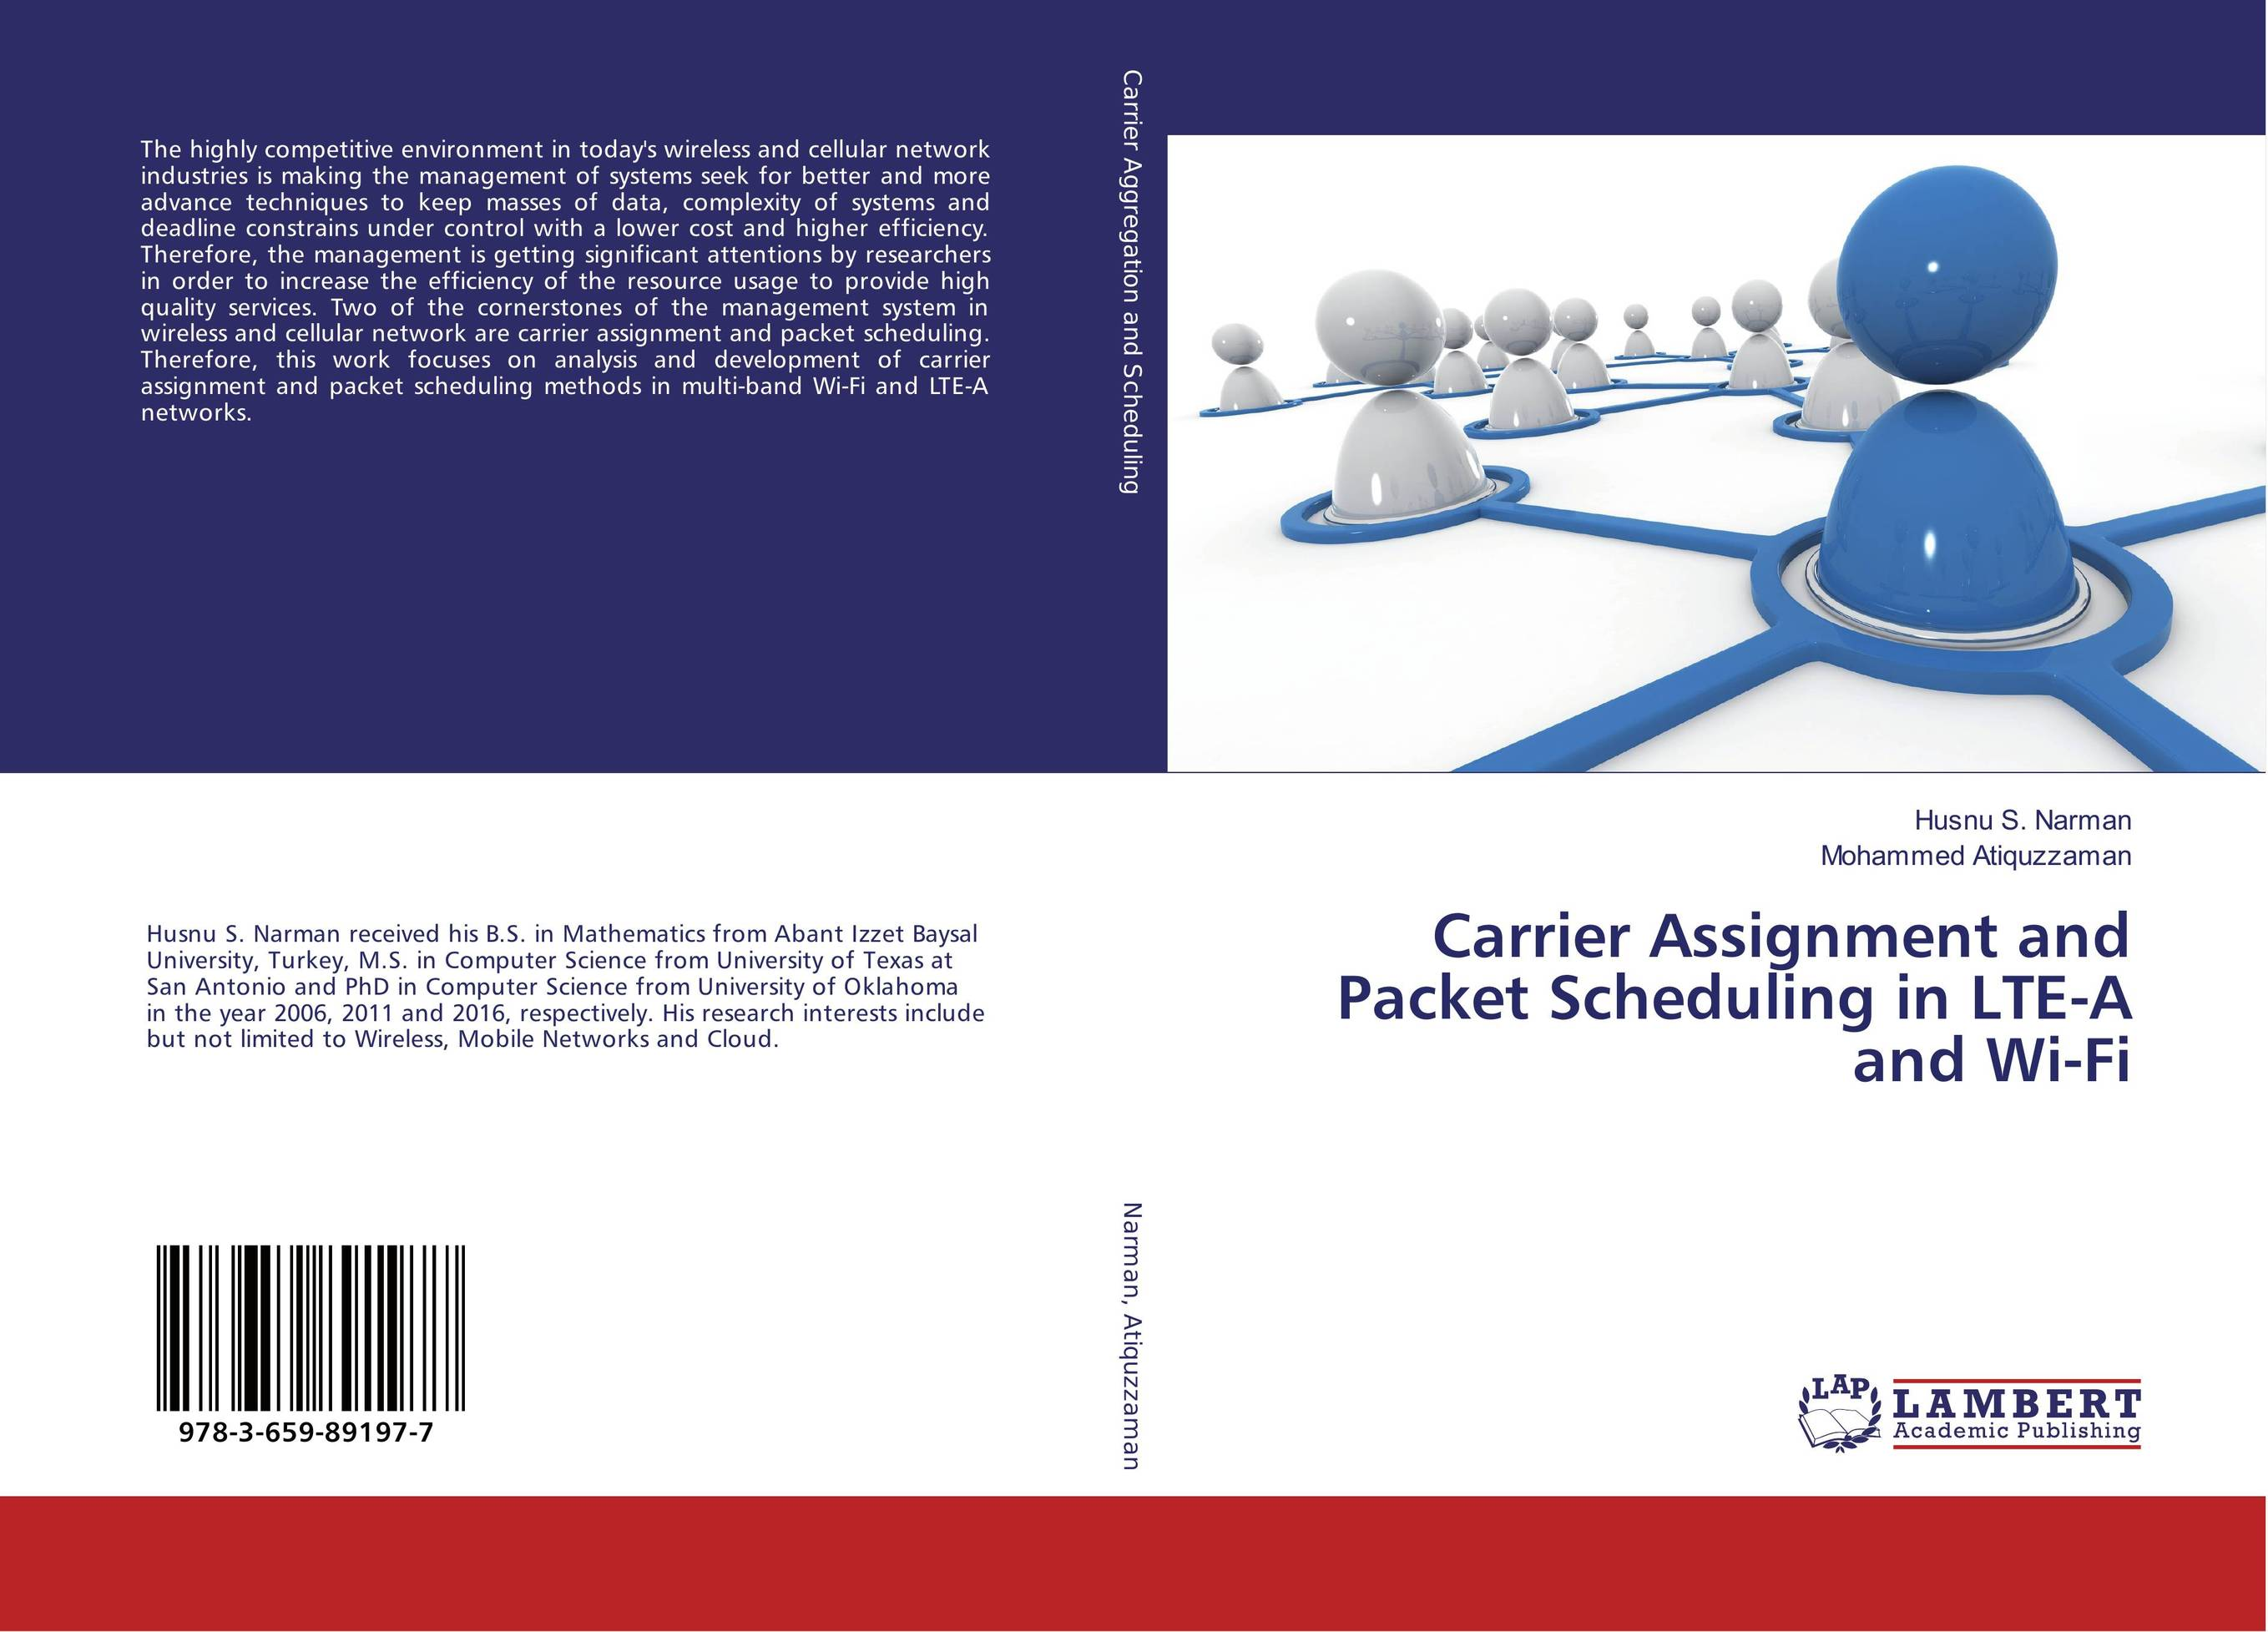 Carrier Assignment and Packet Scheduling in LTE-A and Wi-Fi